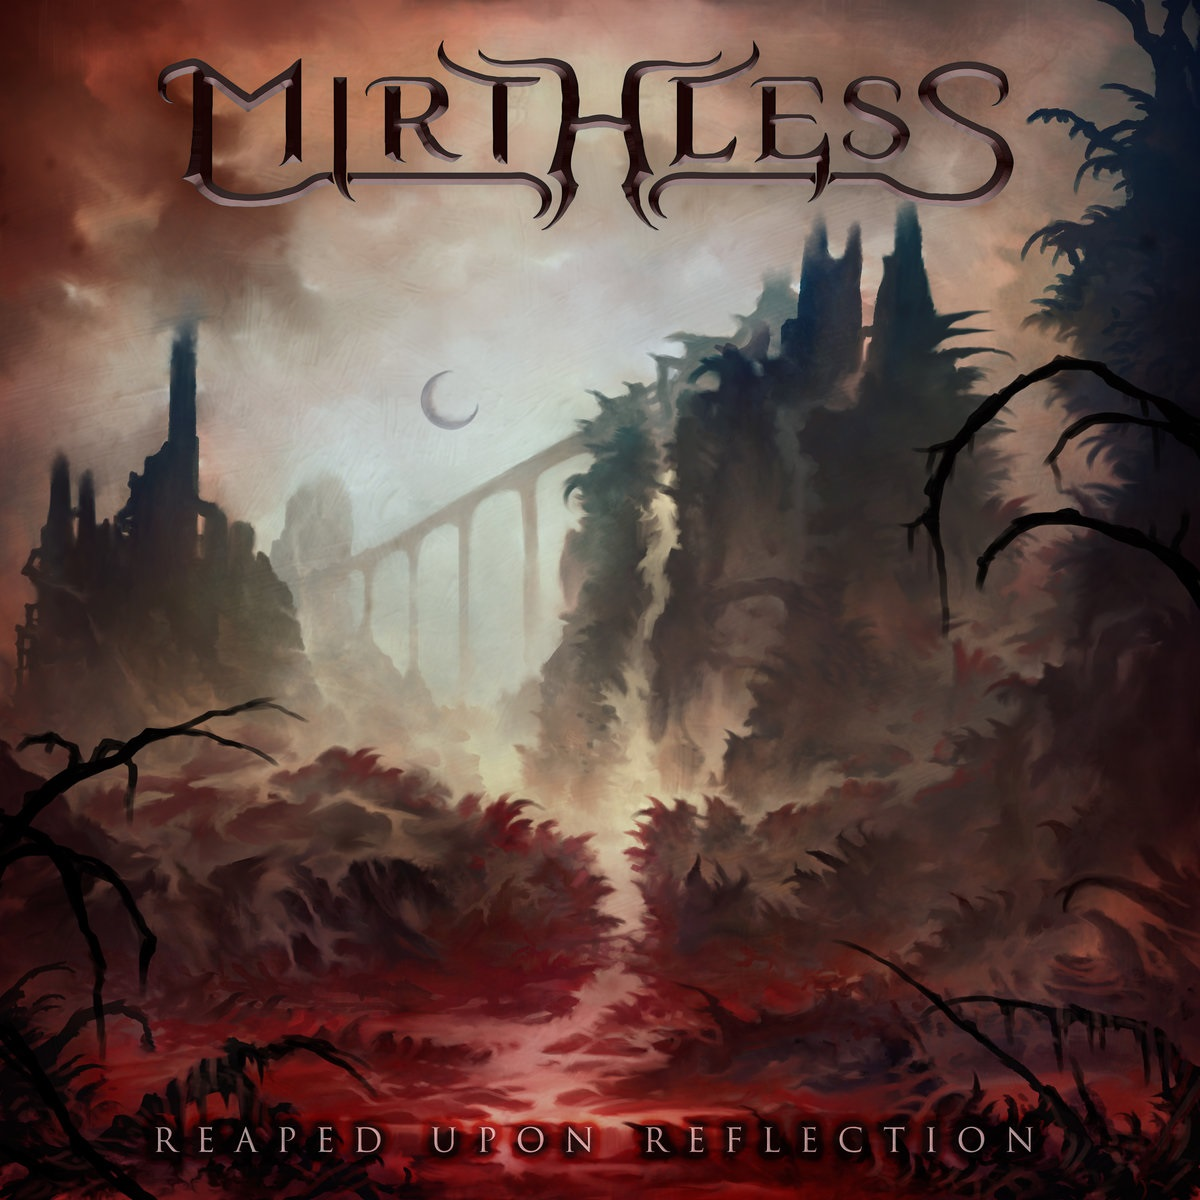 Mirthless - Reaped Upon Reflection (2019)